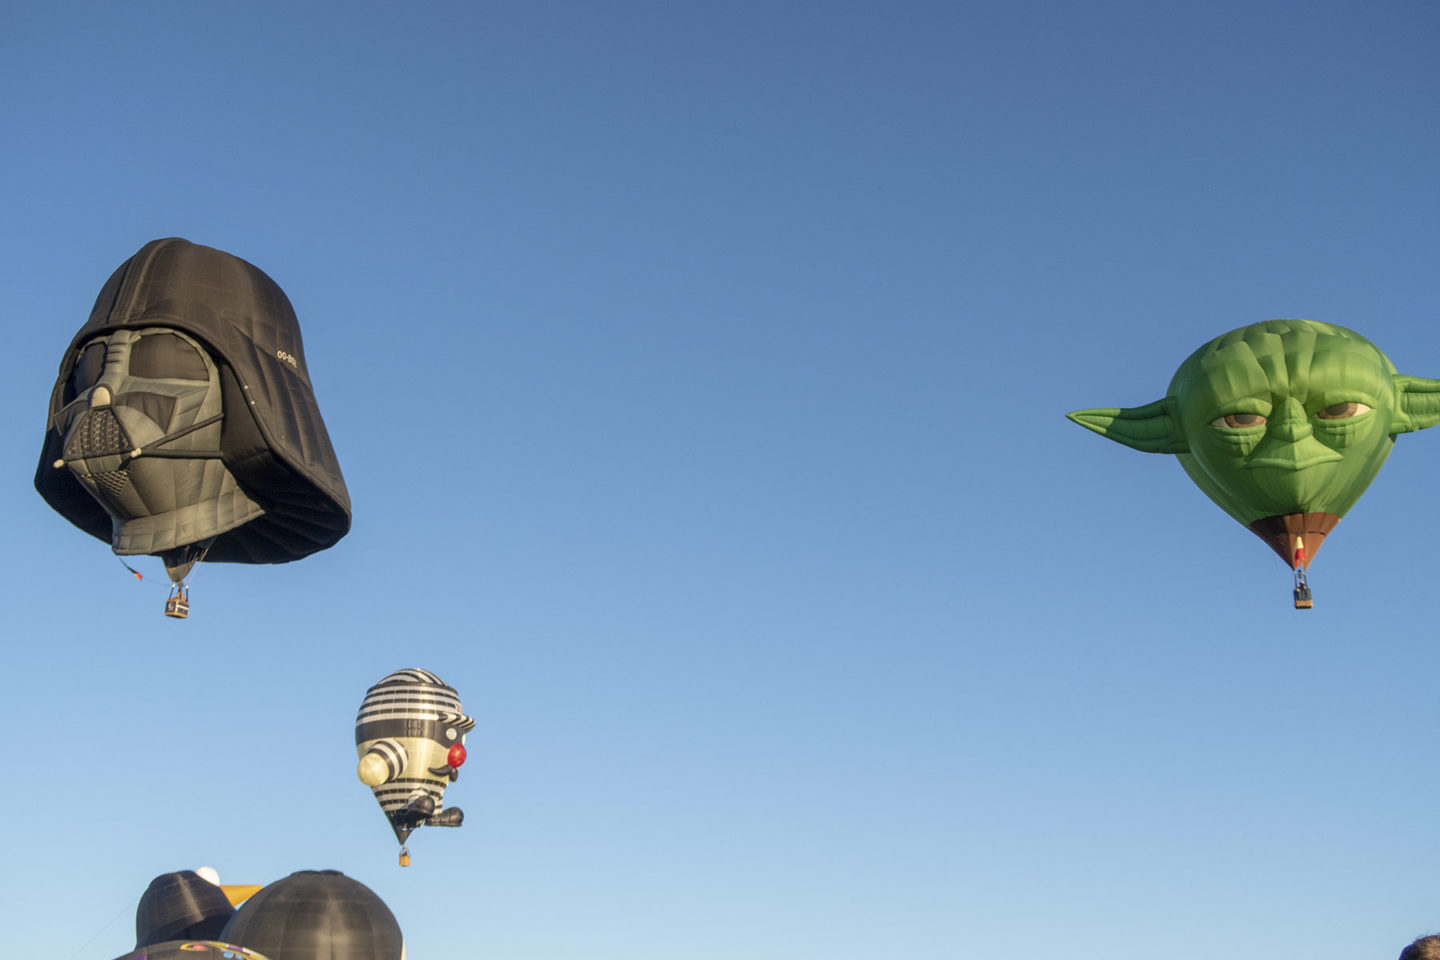 Darth Vader and Yoda Hot air balloons